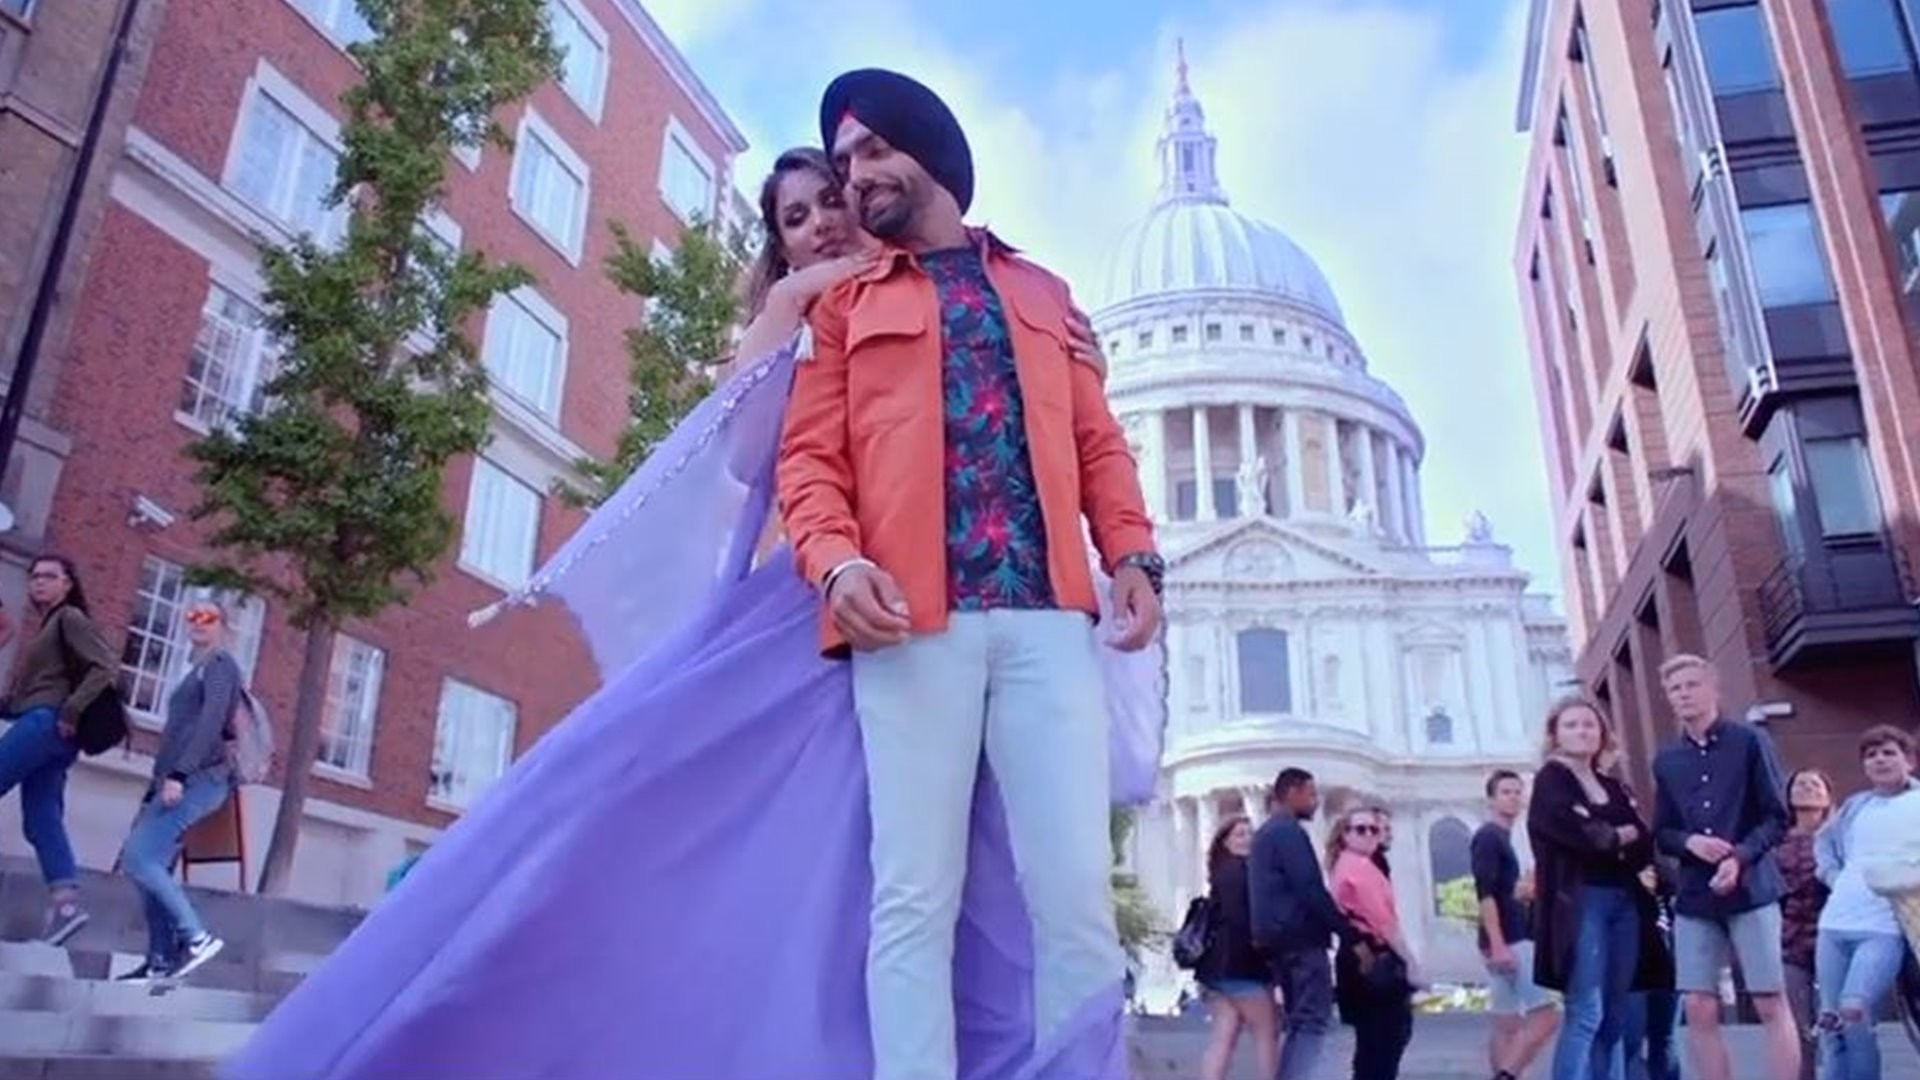 Hindi Movie Happy New Year Video Songs Download Bdpfdw Merry Christmas24 Site